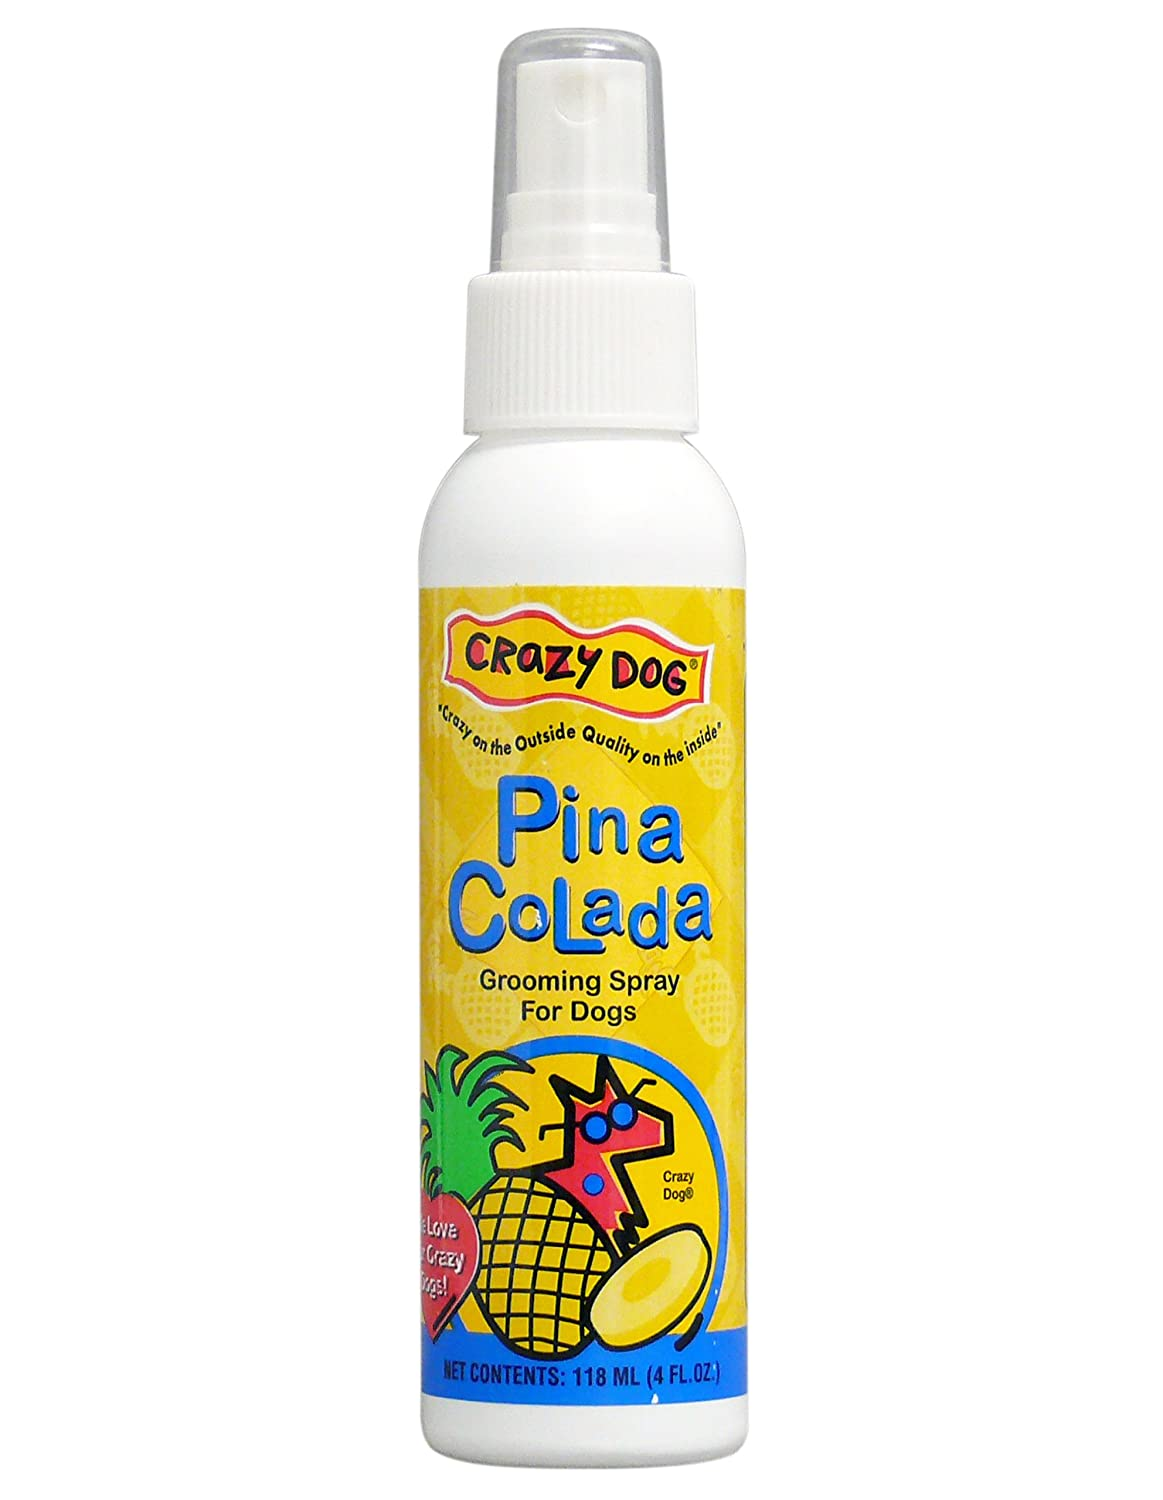 Crazy Dog Pina Colada Grooming Spray for Dogs, 4-Ounce by ...